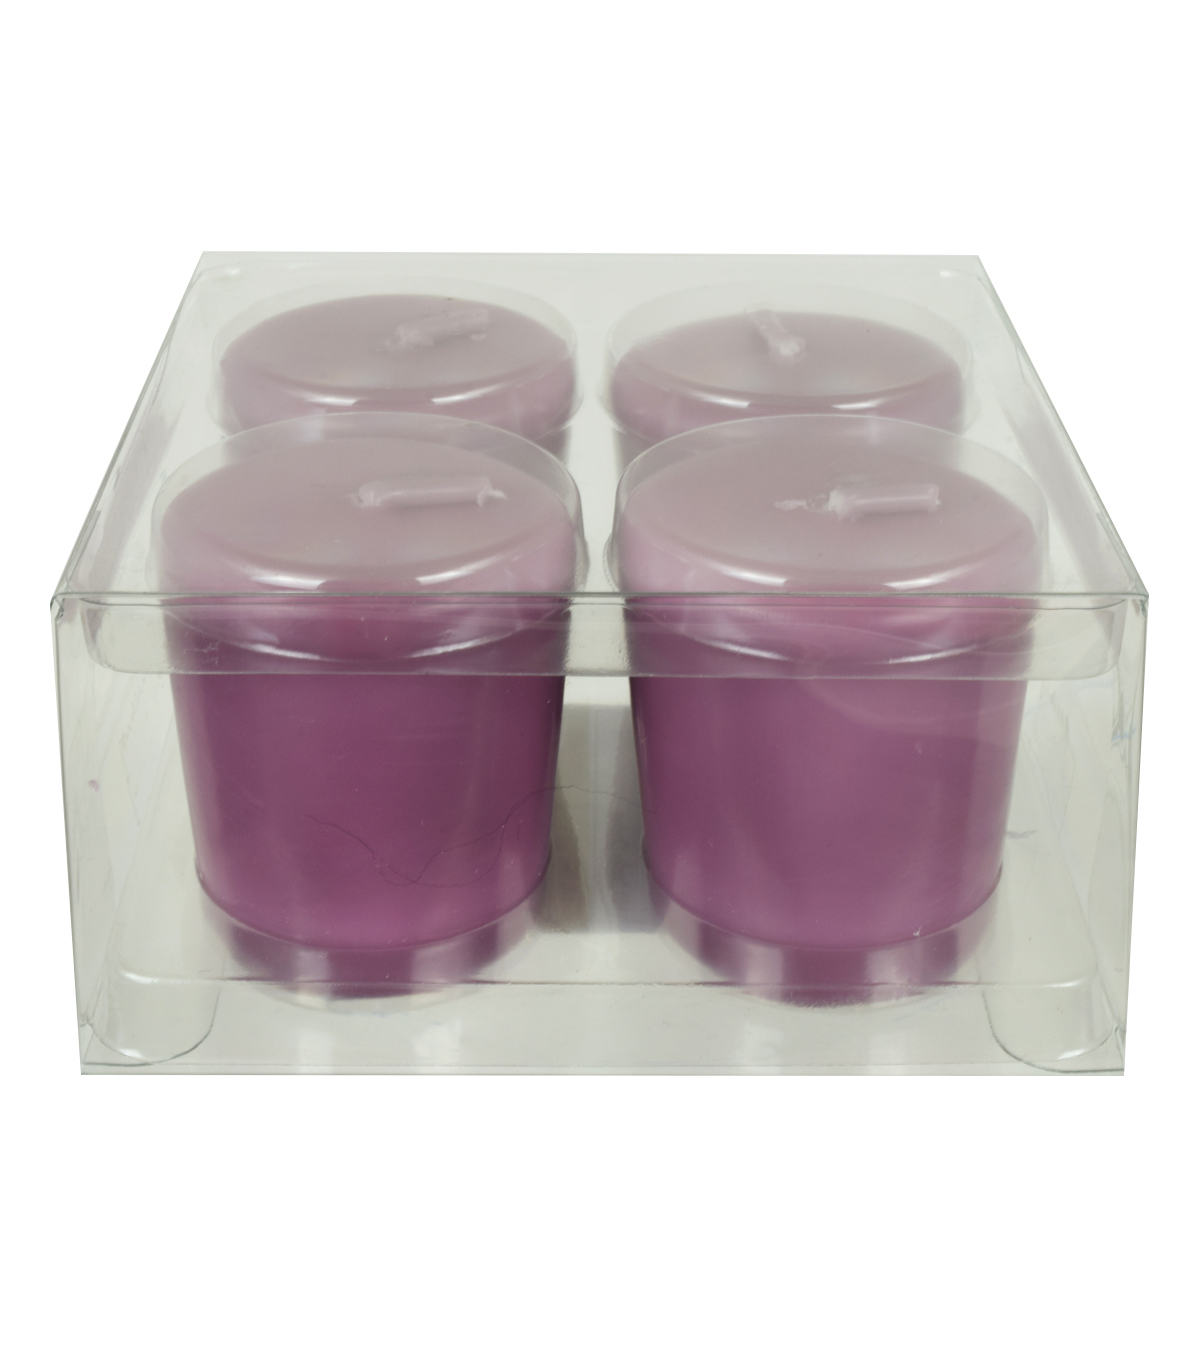 Hudson 43 Candle & Light 4 pk Votive Candles-Dusty Orchid